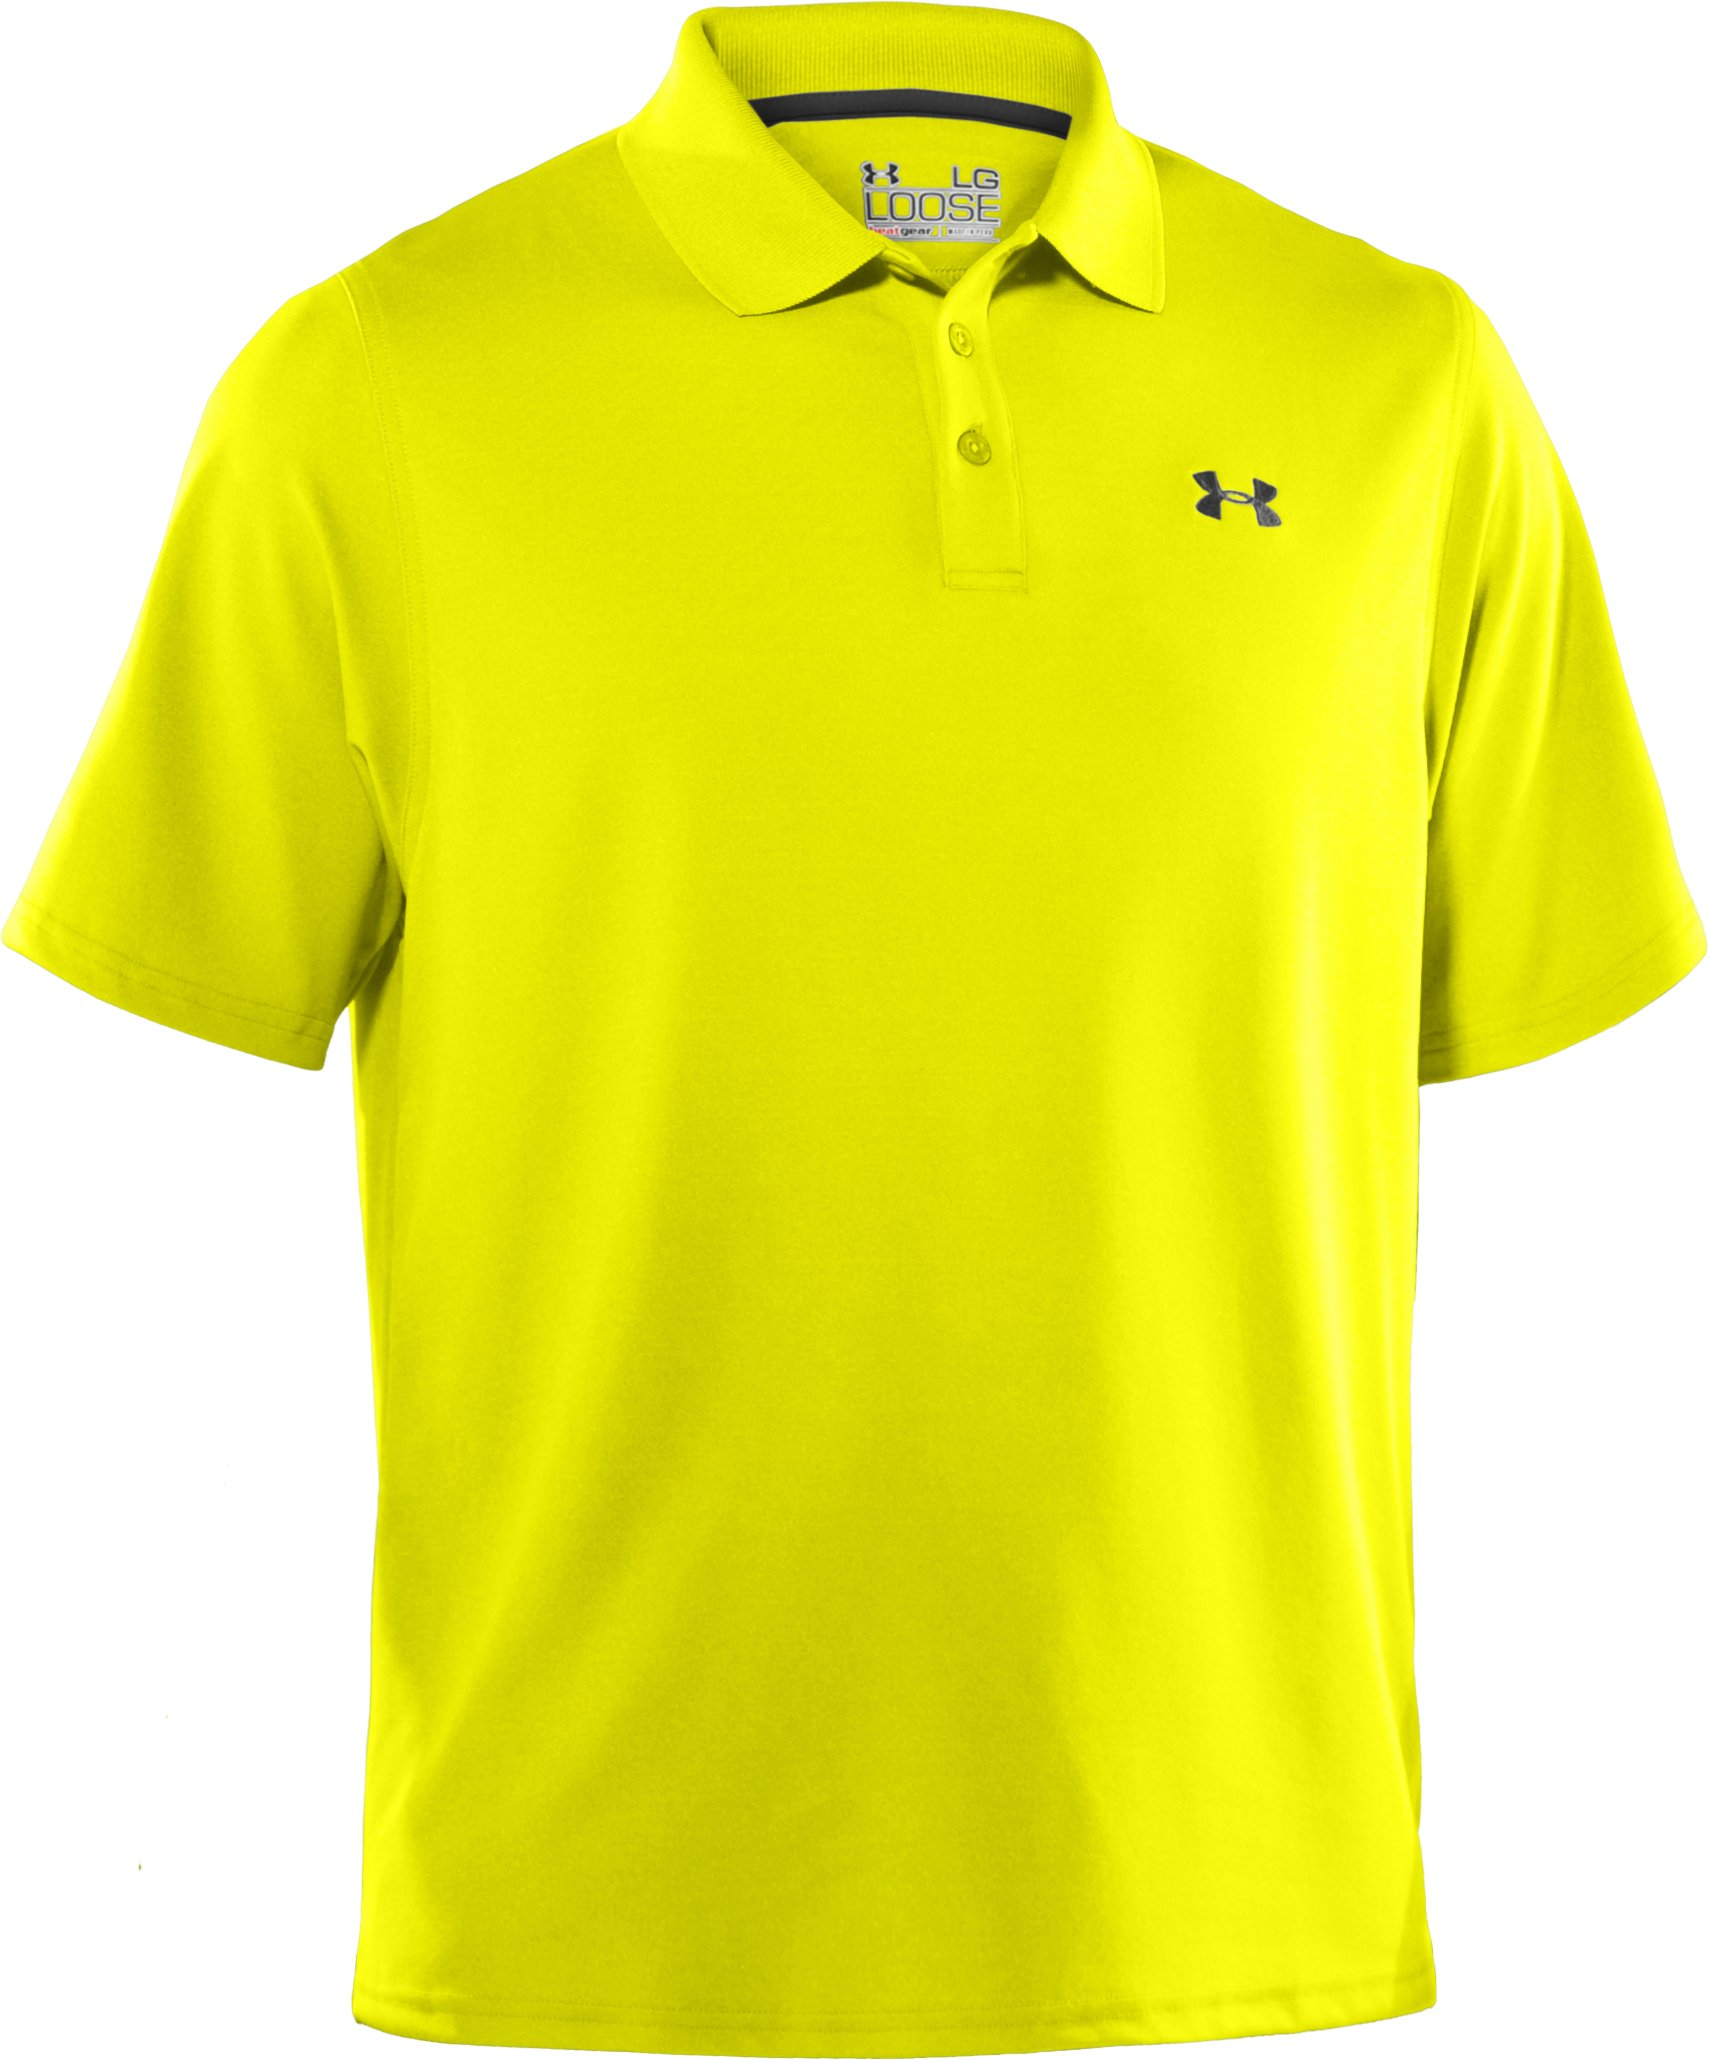 Men's UA Performance Polo — Regular Fit, High-Vis Yellow, undefined